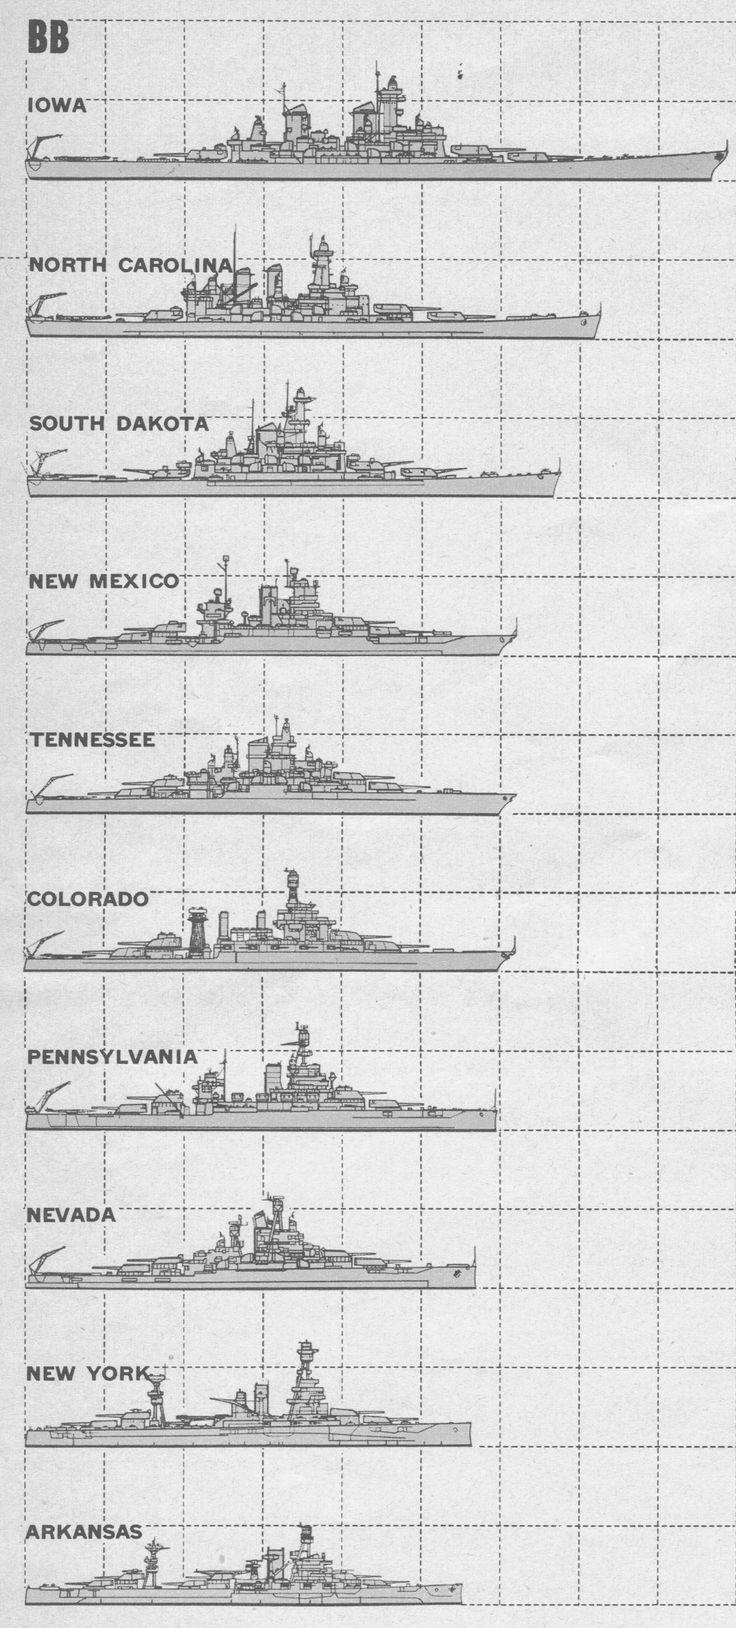 US Battleships Comparisons - Look at the length of Iowa!  887 feet long :)  North Carolina was 729 feet long.  HMS Hood was 860 feet long.  Reason for Battleship length = space for boilers, streamlined hull = 32/33 knots :)  Compare North Carolina (28.5 knots).